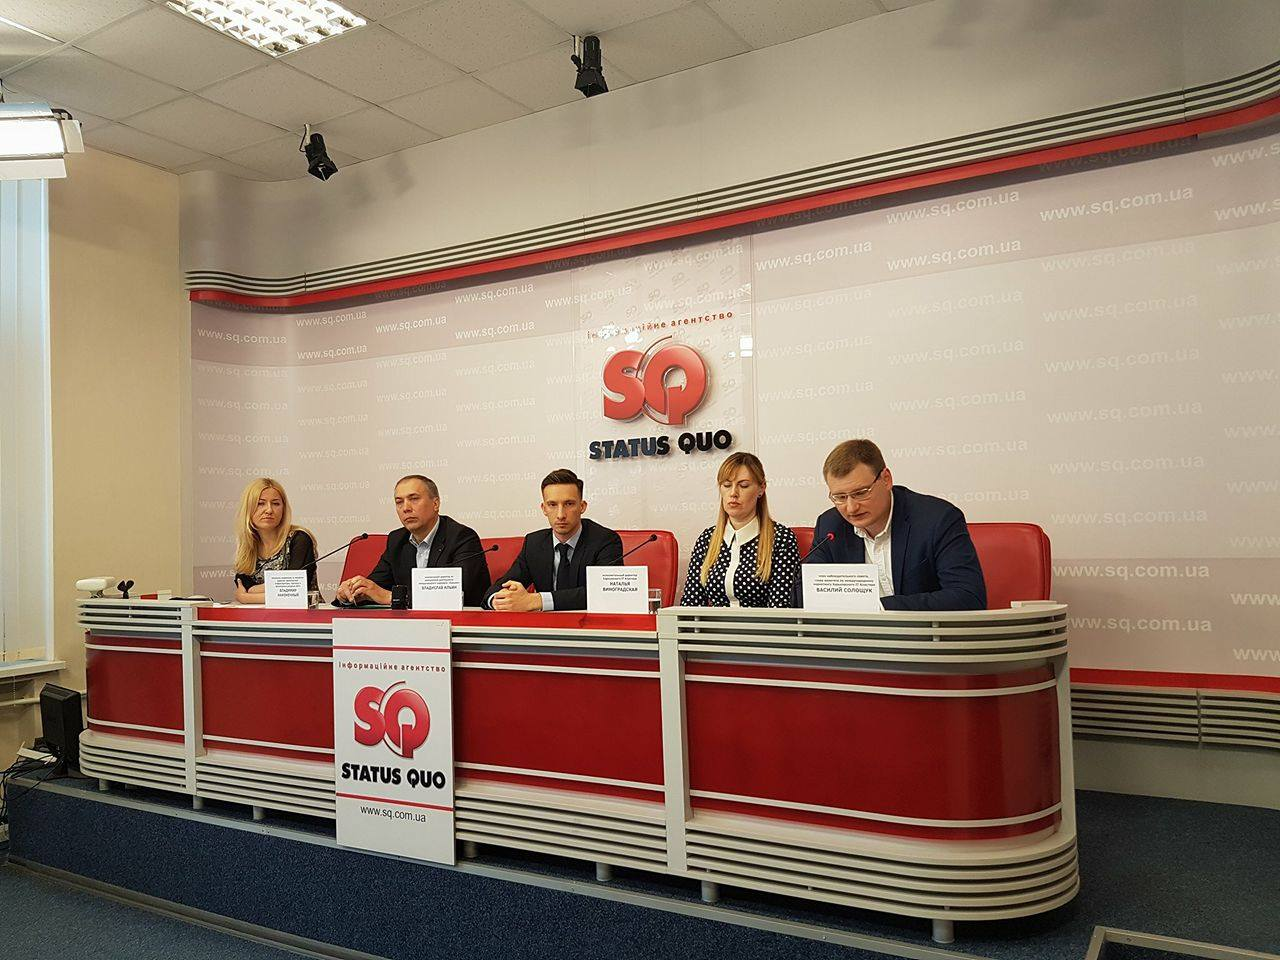 18493773_1371351632930927_1997684284_o Kharkiv IT Cluster initiated a press conference for air-traffic widening